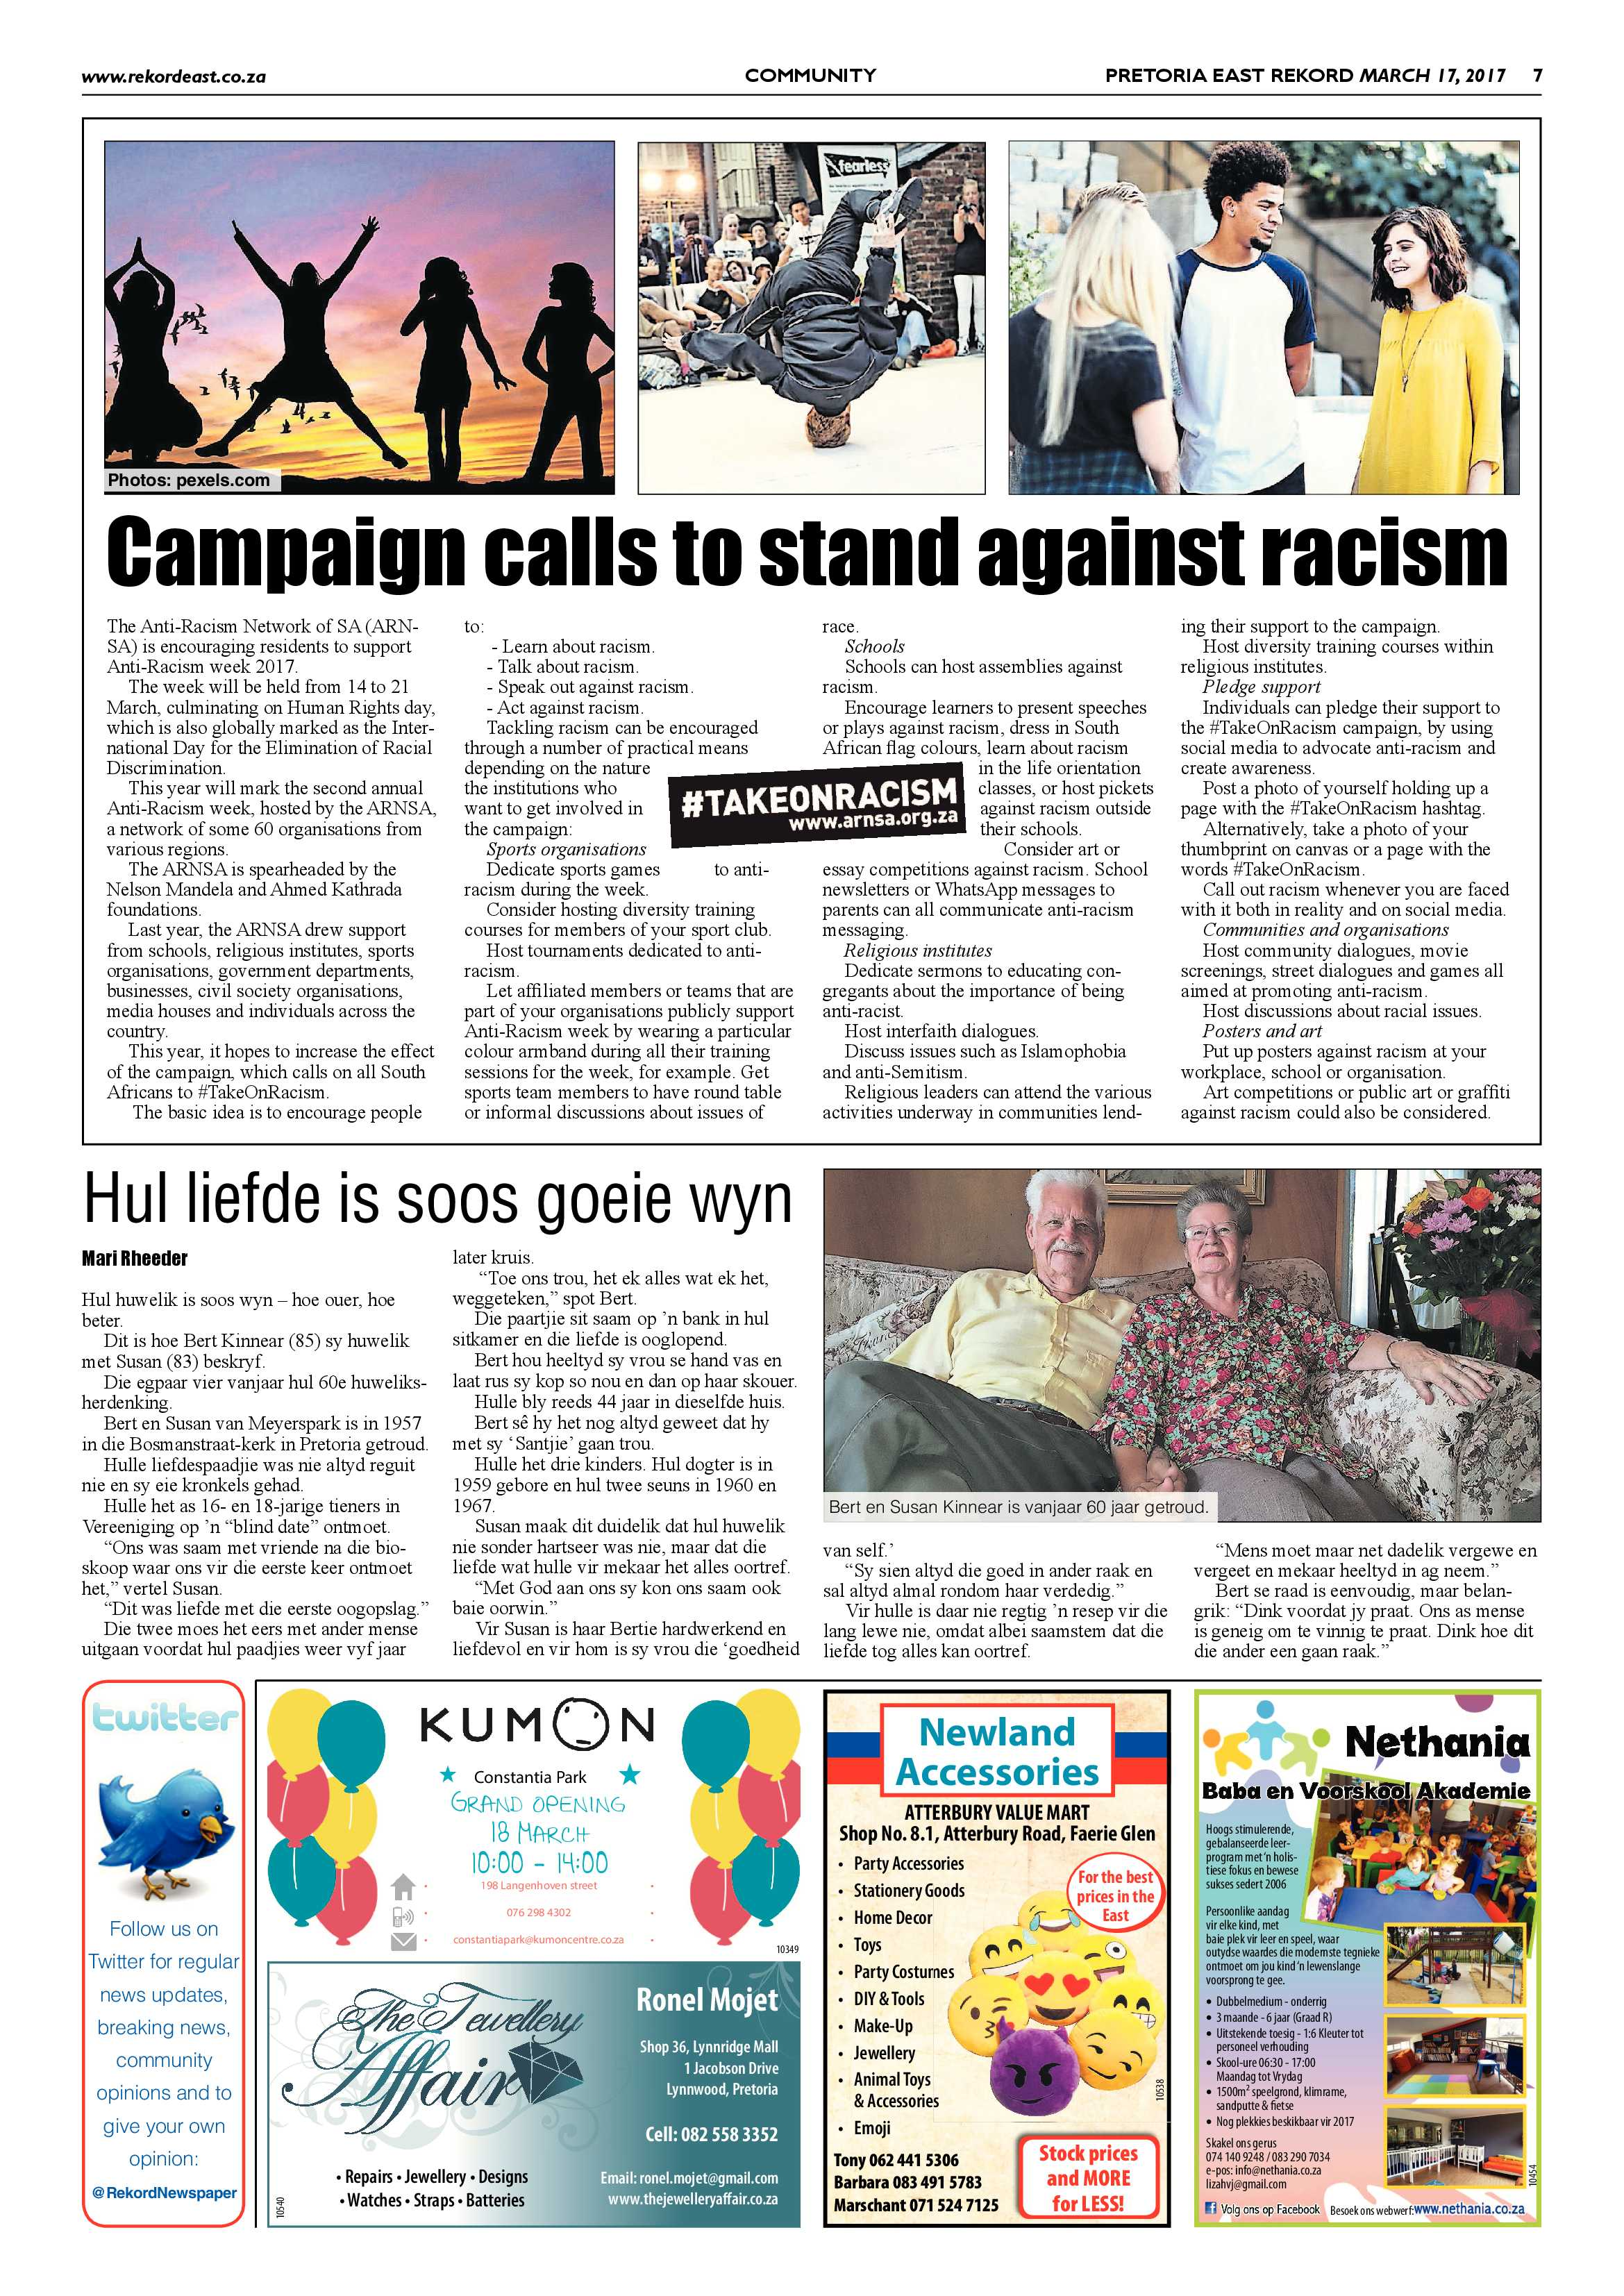 rekord-east-17-march-2017-epapers-page-7